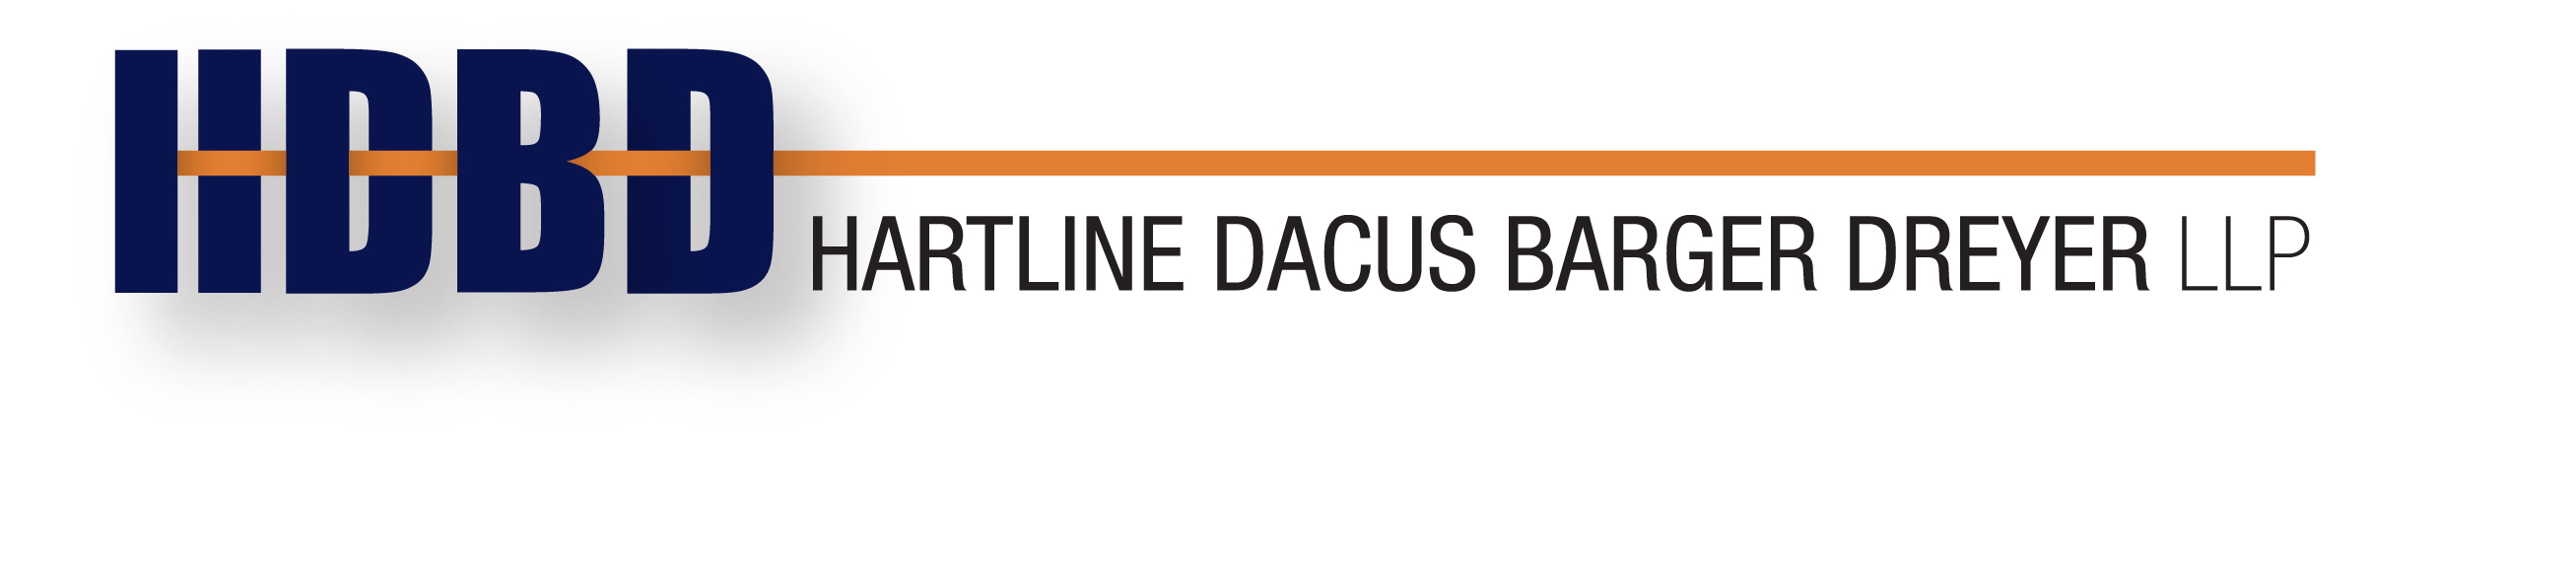 Hartline dacus barger dreyer llp successfully defends for Honda finance corporation